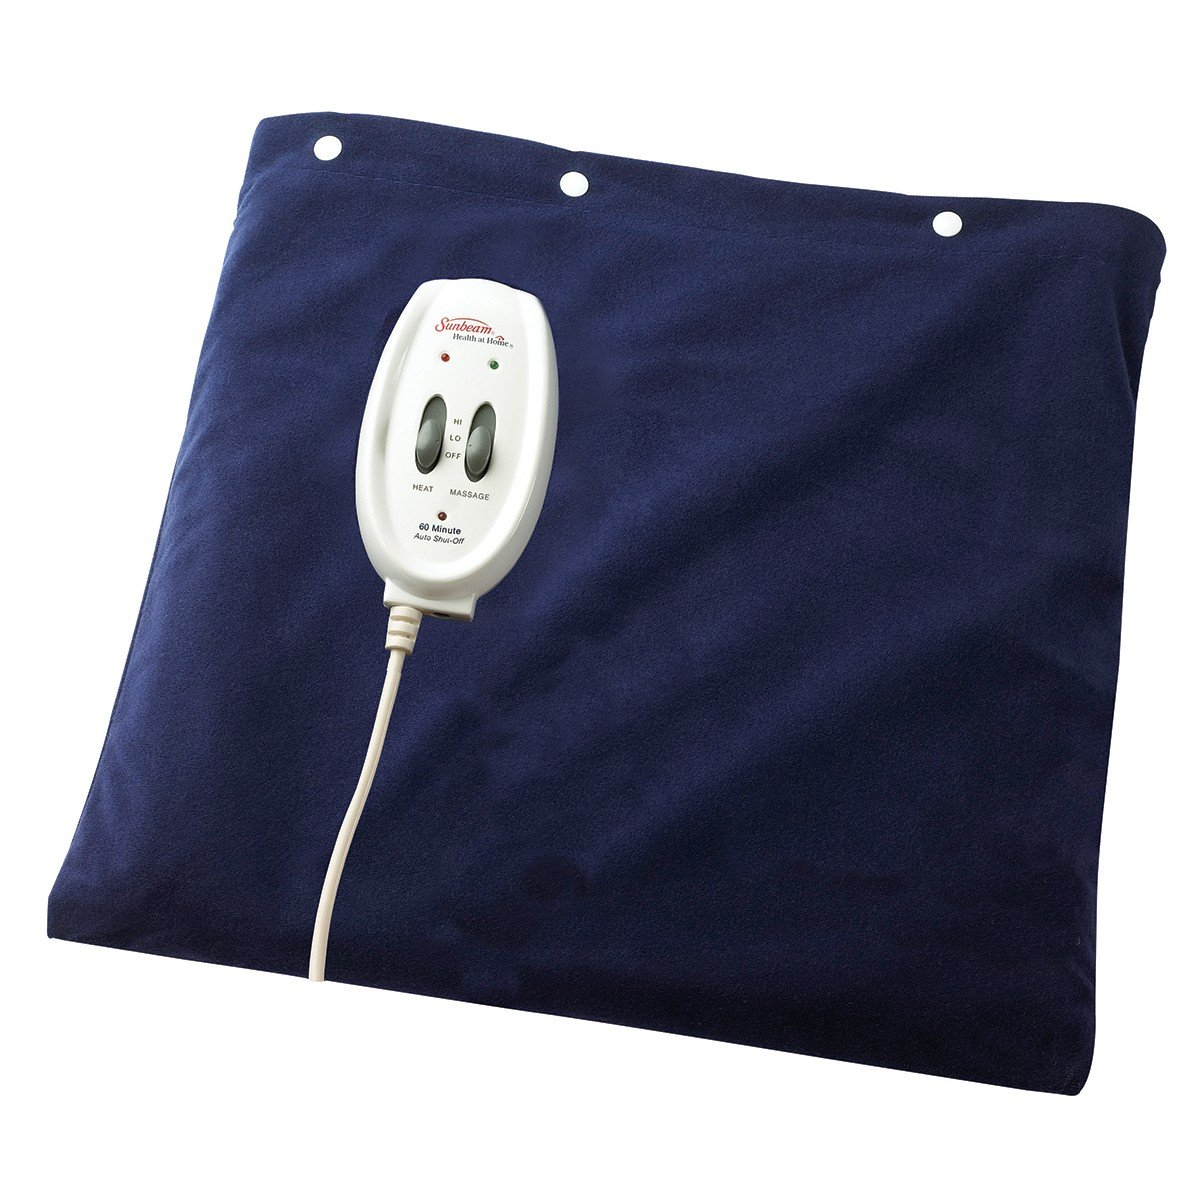 Necessary facial heating pad